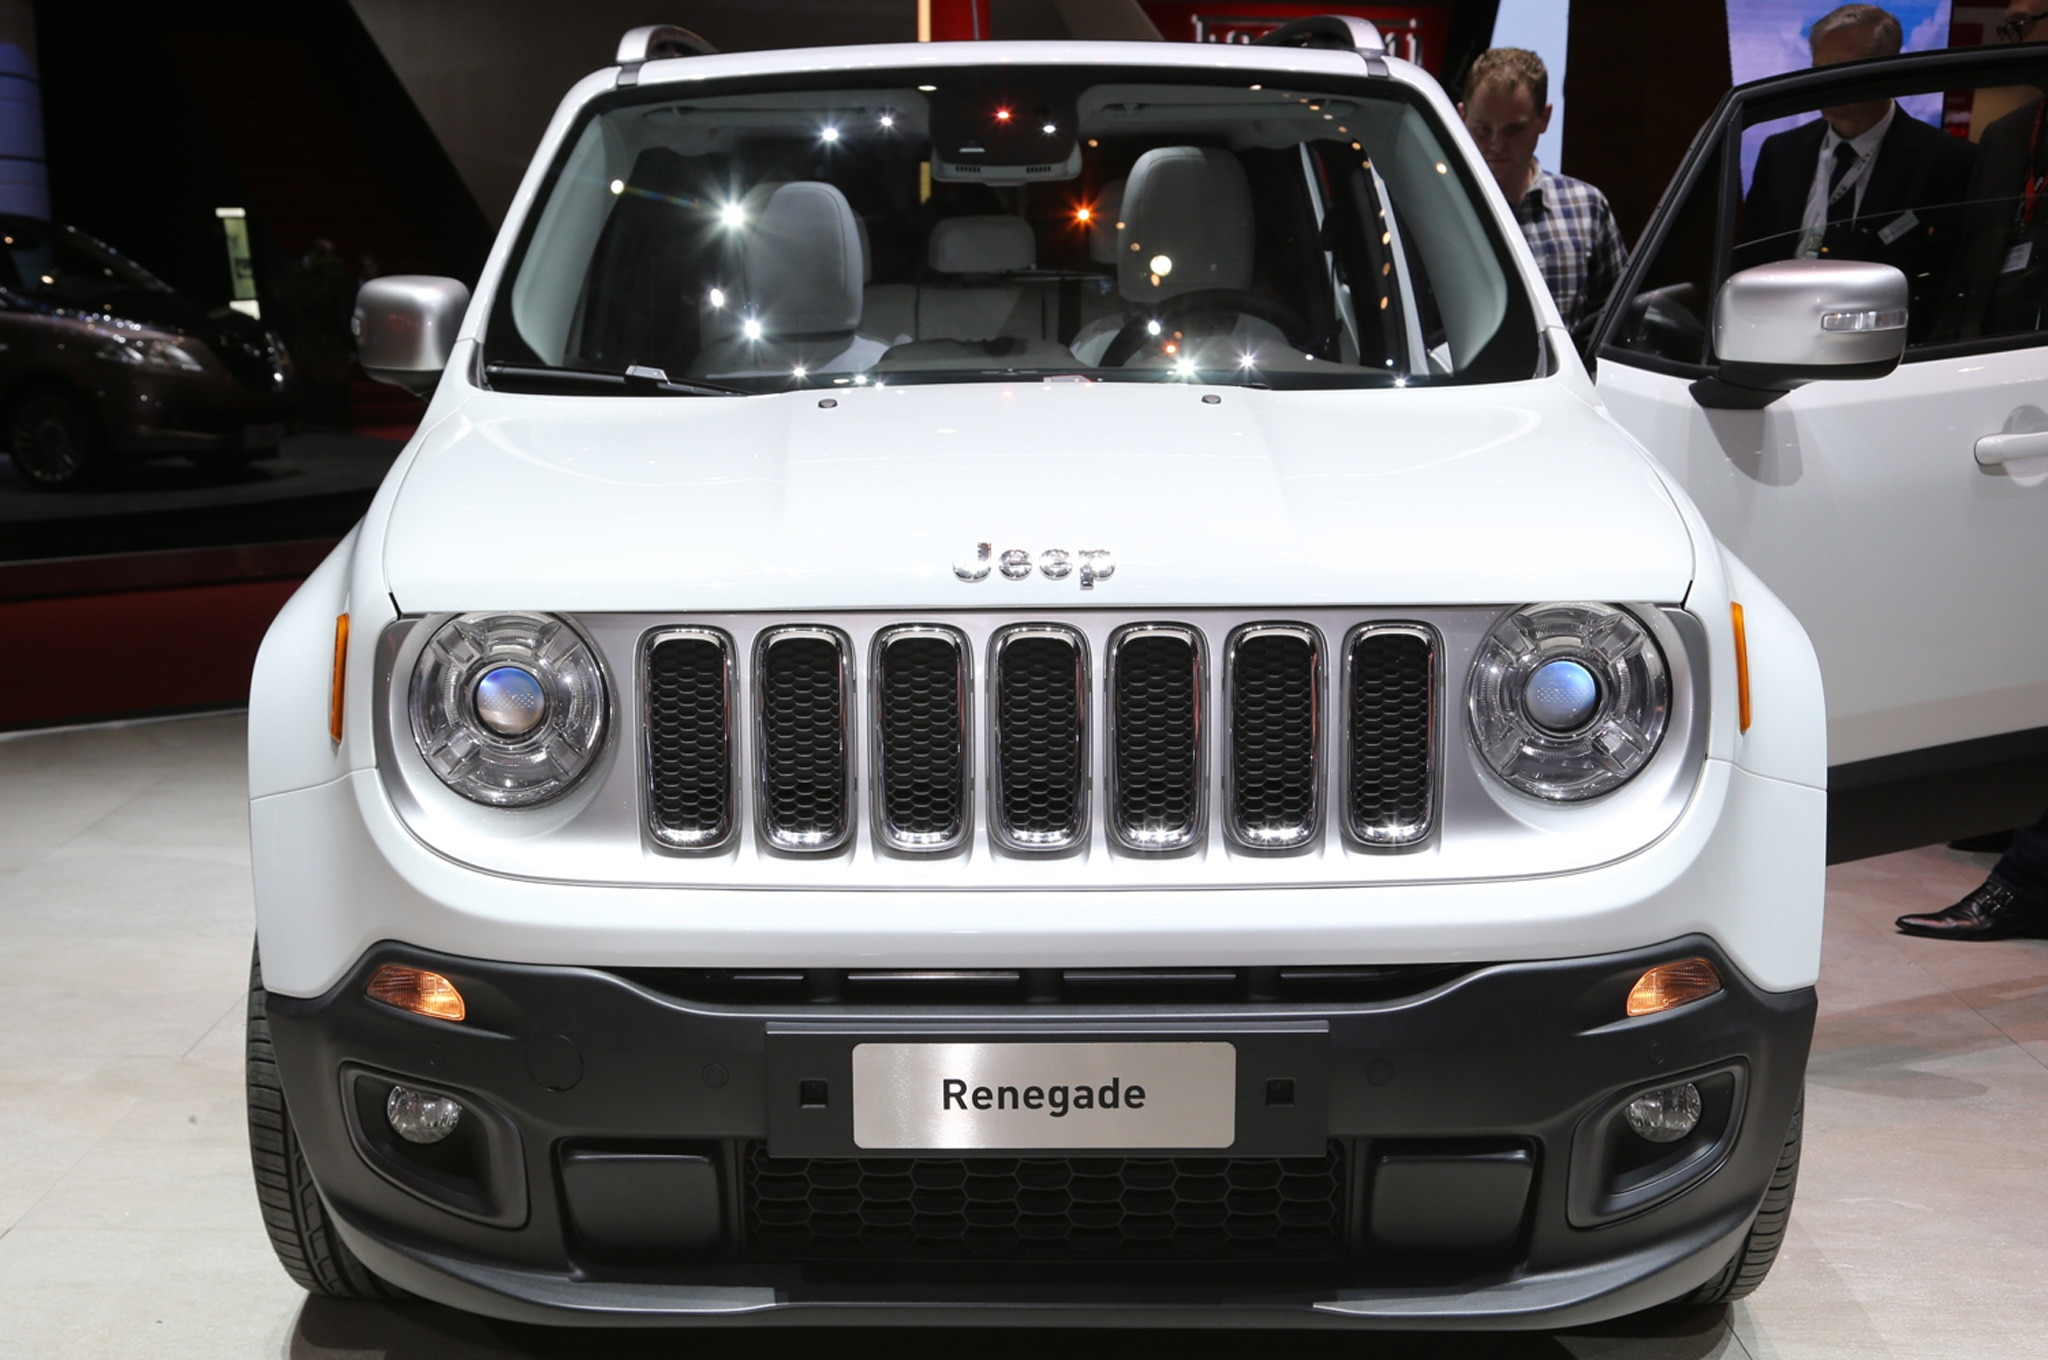 2015 Jeep Renegade Limited front view